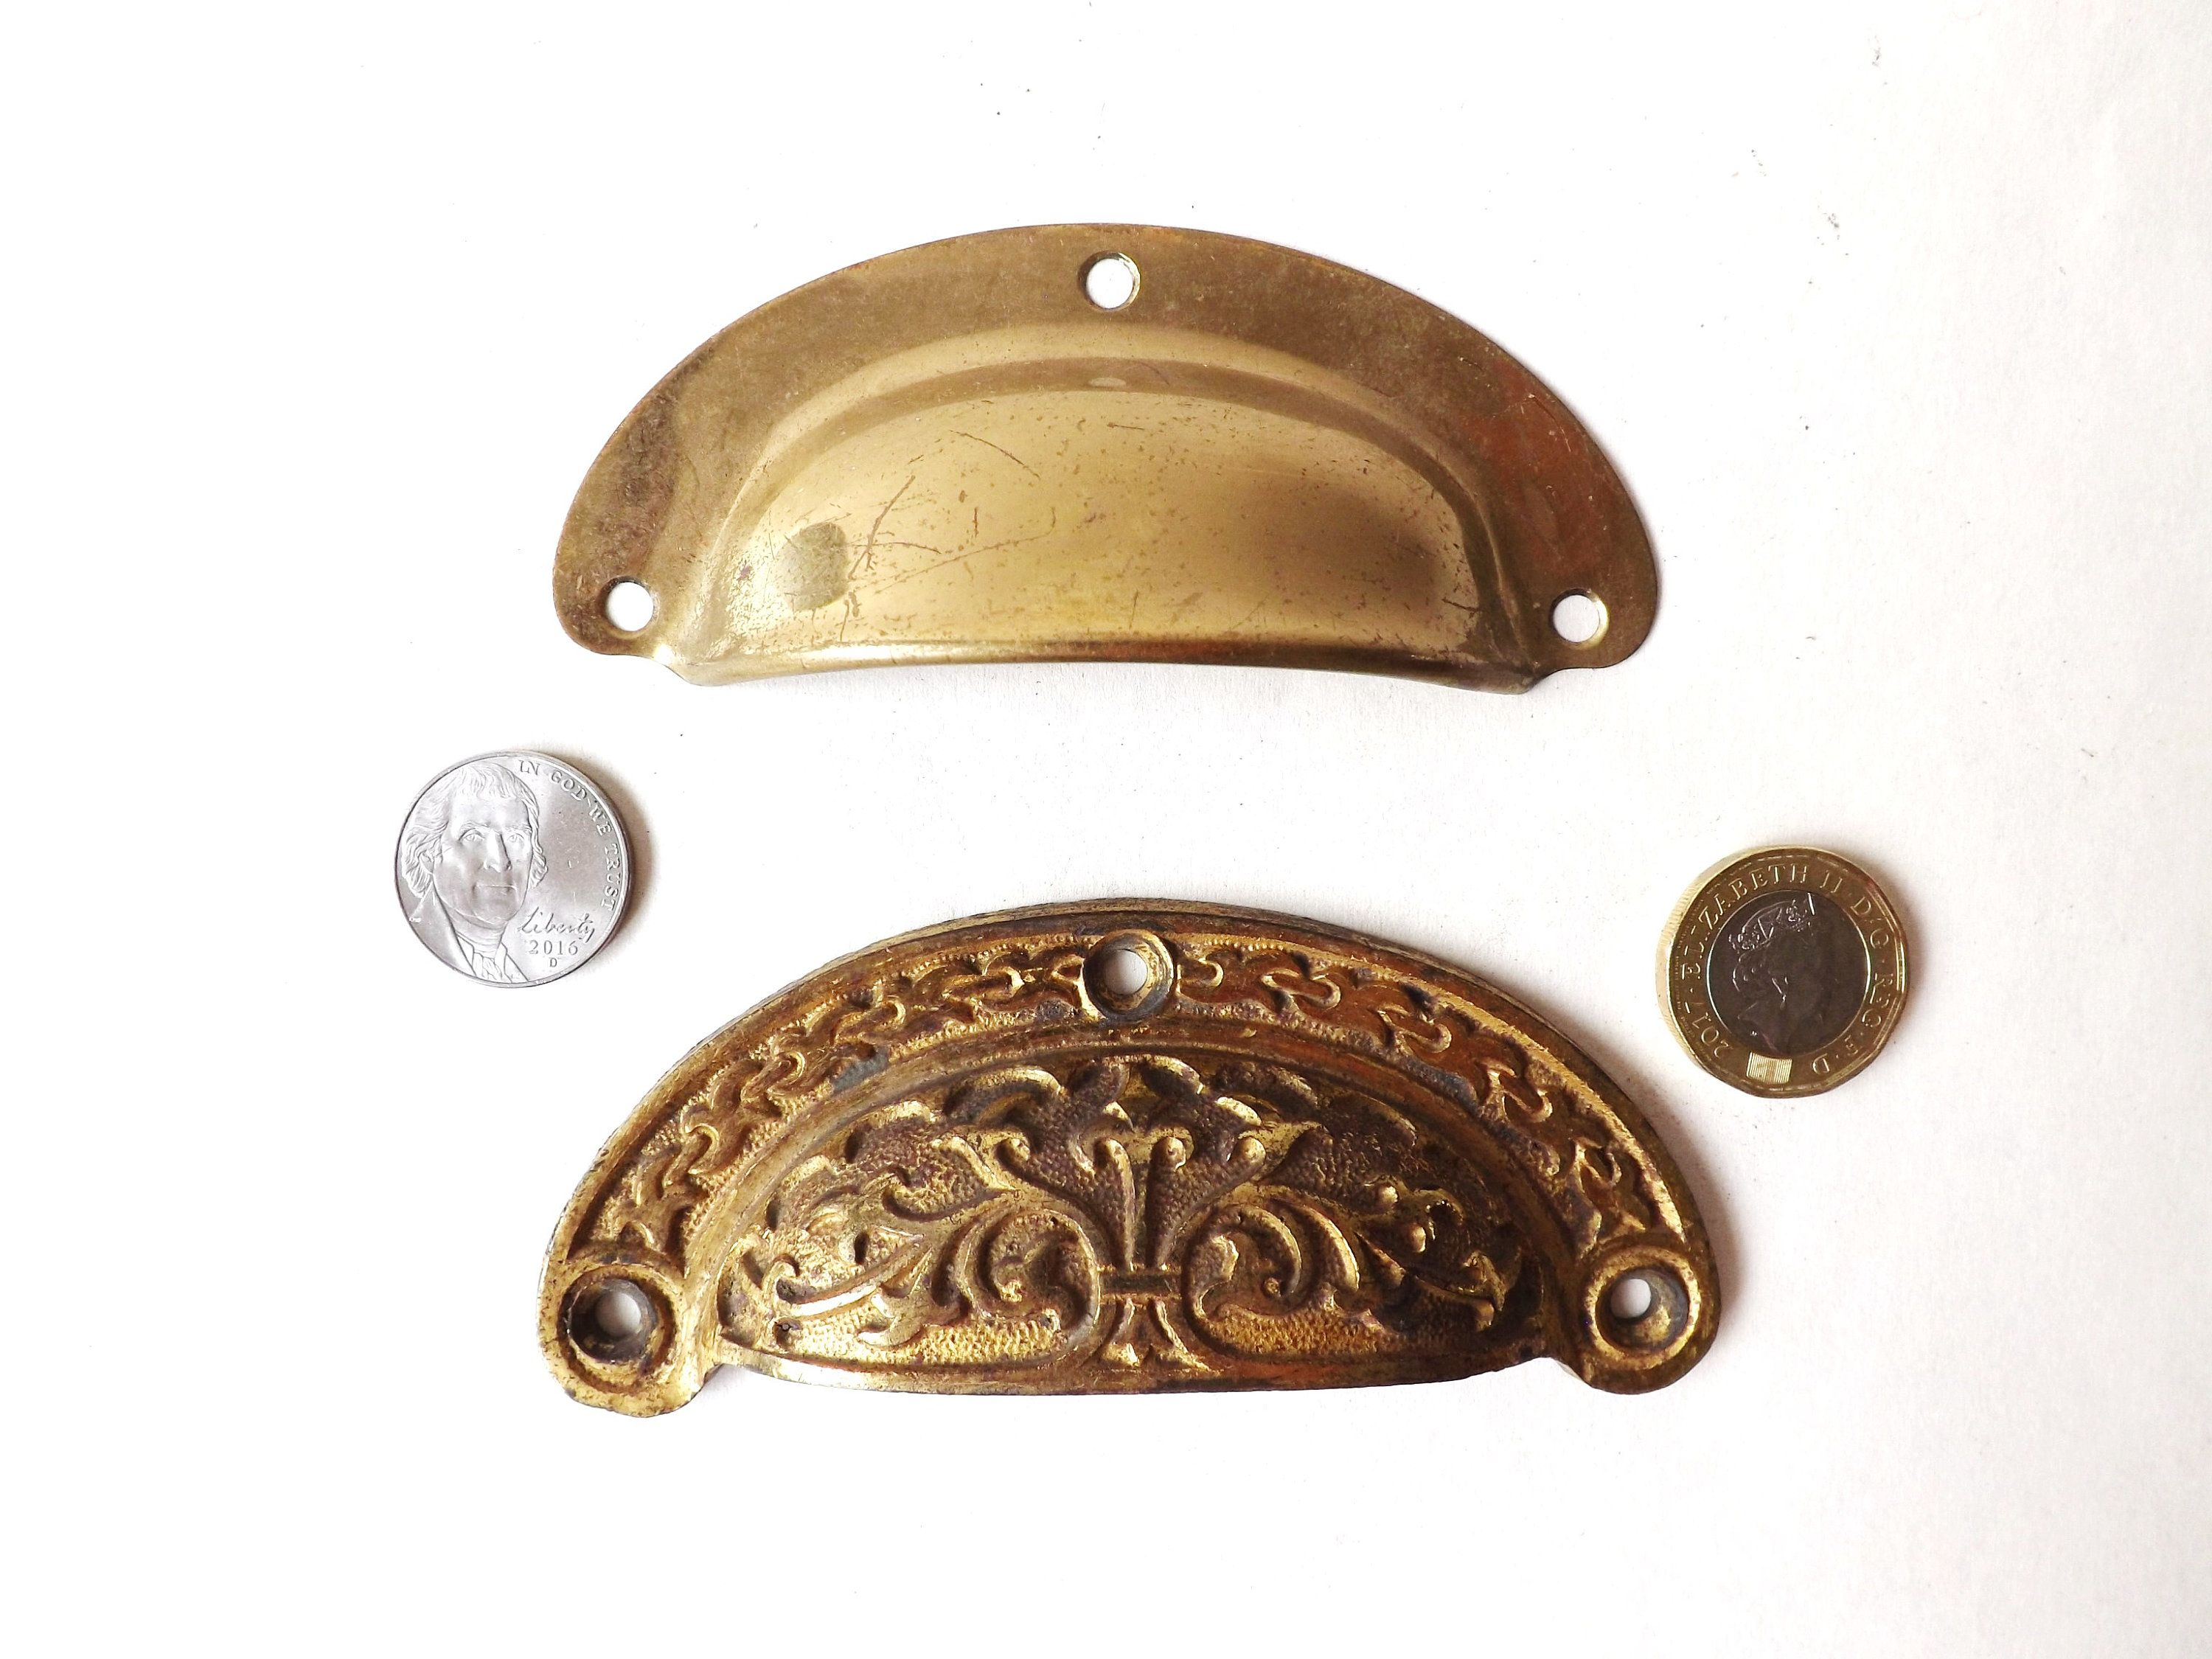 2 Antique Brass Cup Handles Reclaimed Old Original Cabinet Drawer Pulls Salvaged Hardware Furniture Upcycling Restoration Antique Brass Antiques Brass